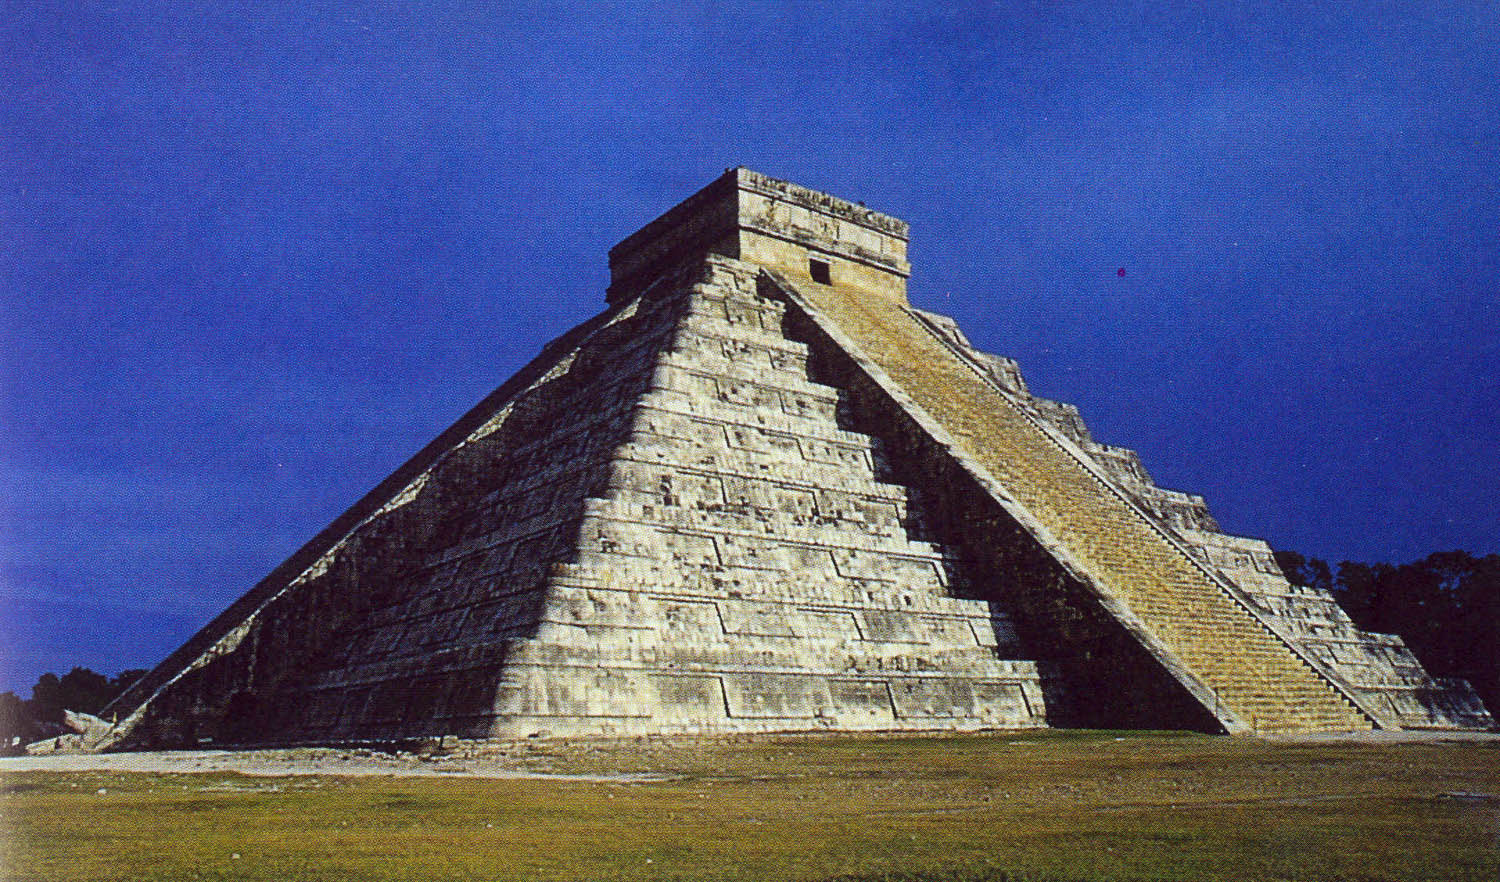 serpens_chichen_itza.jpg